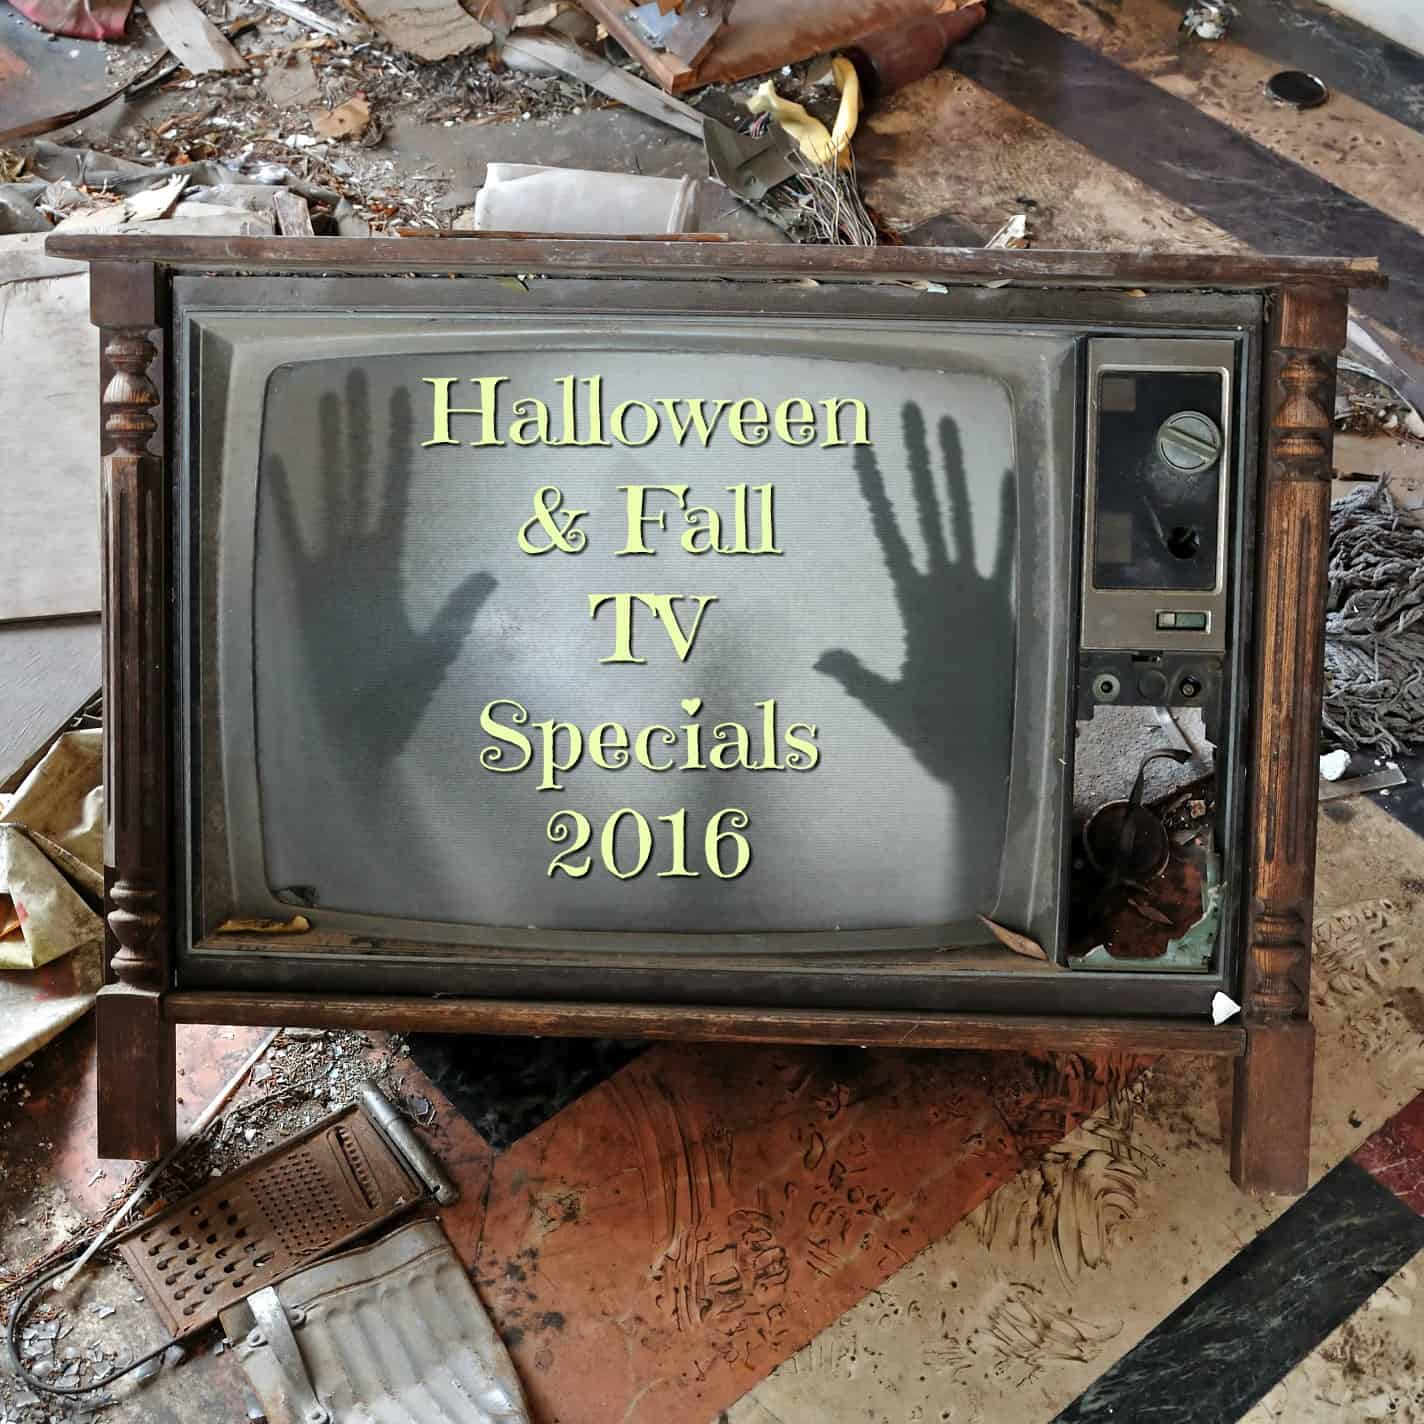 Looking for the latest Halloween specials for 2016? We have all the fall and Halloween TV movies and special TV episodes you won't want to miss!